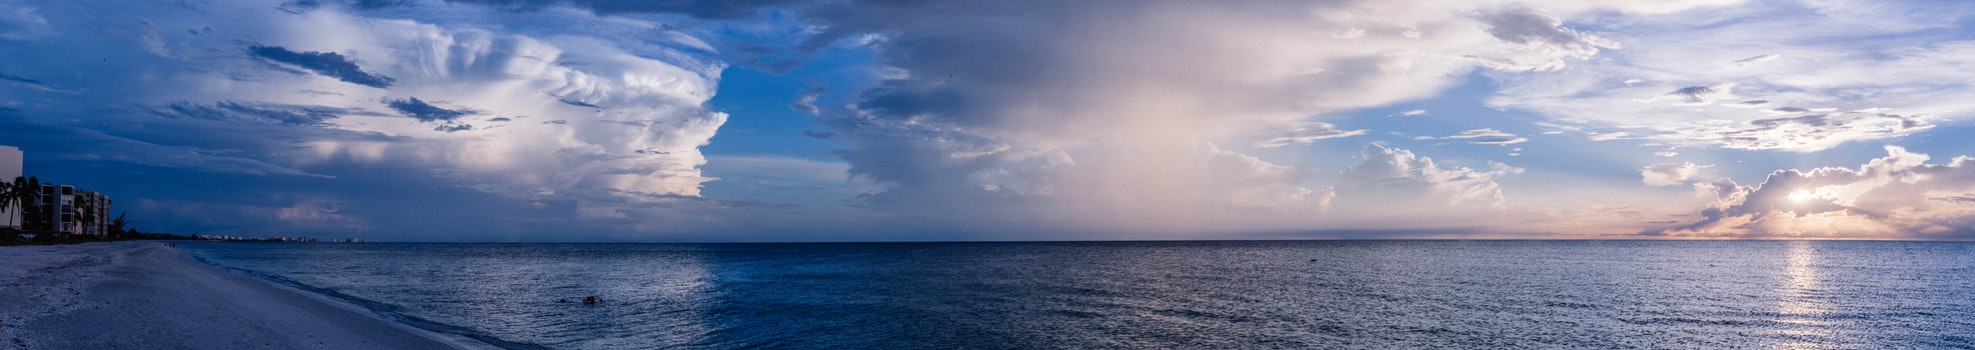 Large Body of Water Under Cloudy Sky